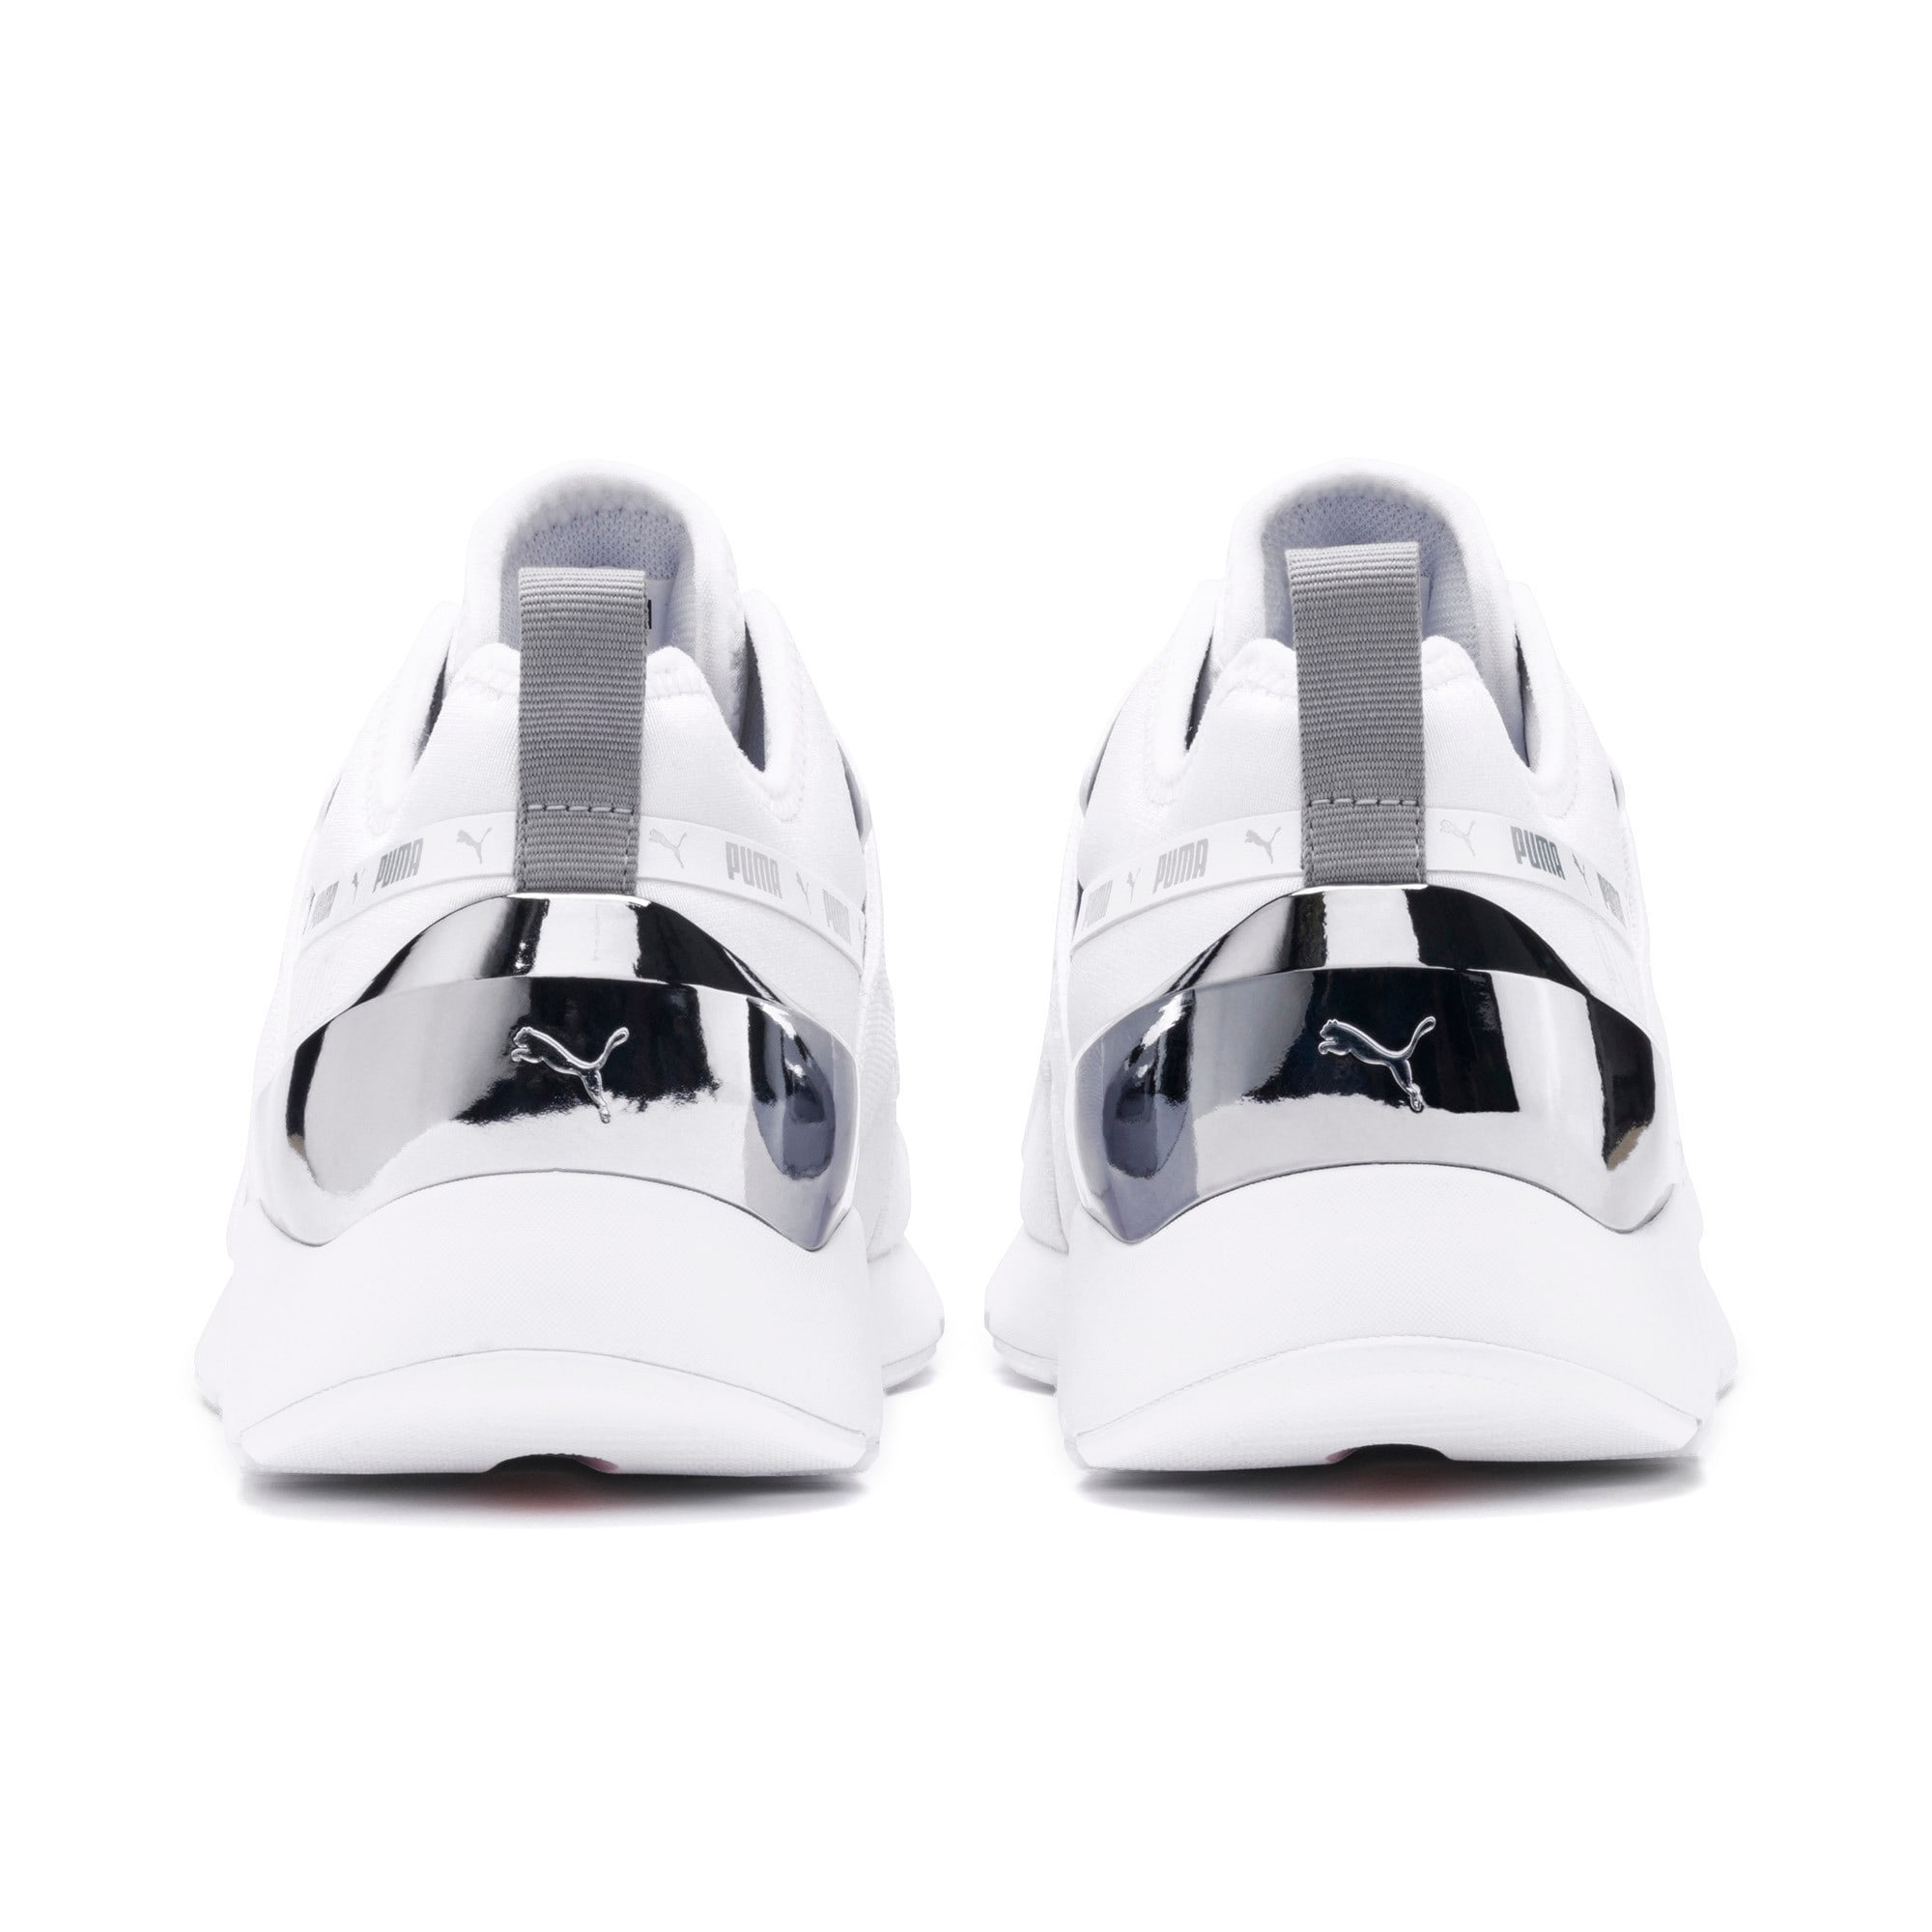 Anteprima 4 di Muse X-2 Metallic Women's Trainers, Puma White, medio